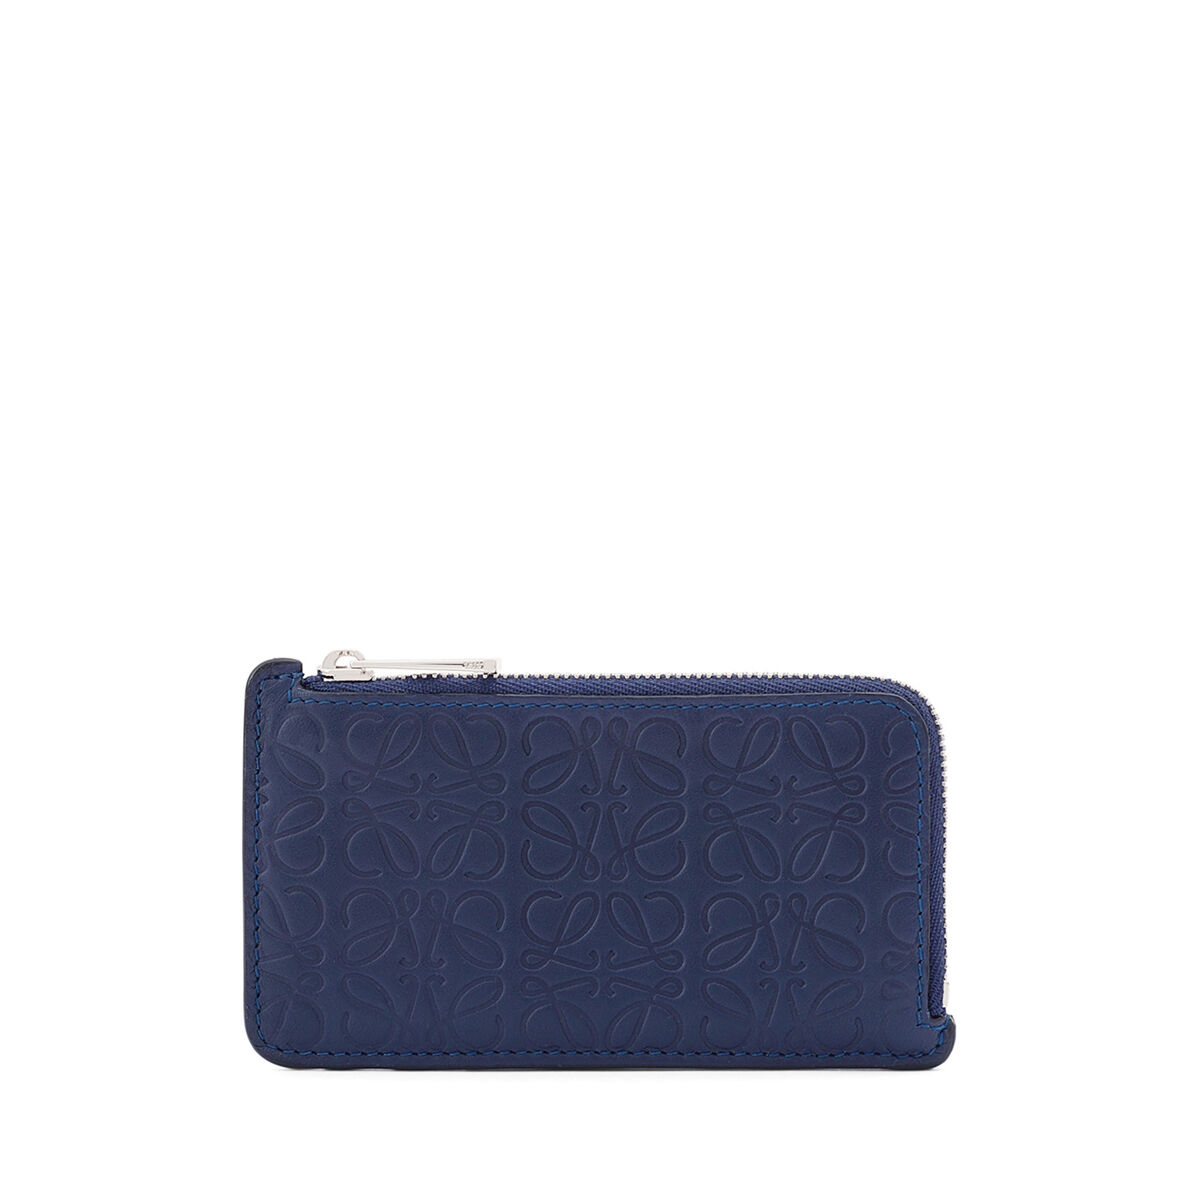 LOEWE Coin/Card Holder Navy Blue all